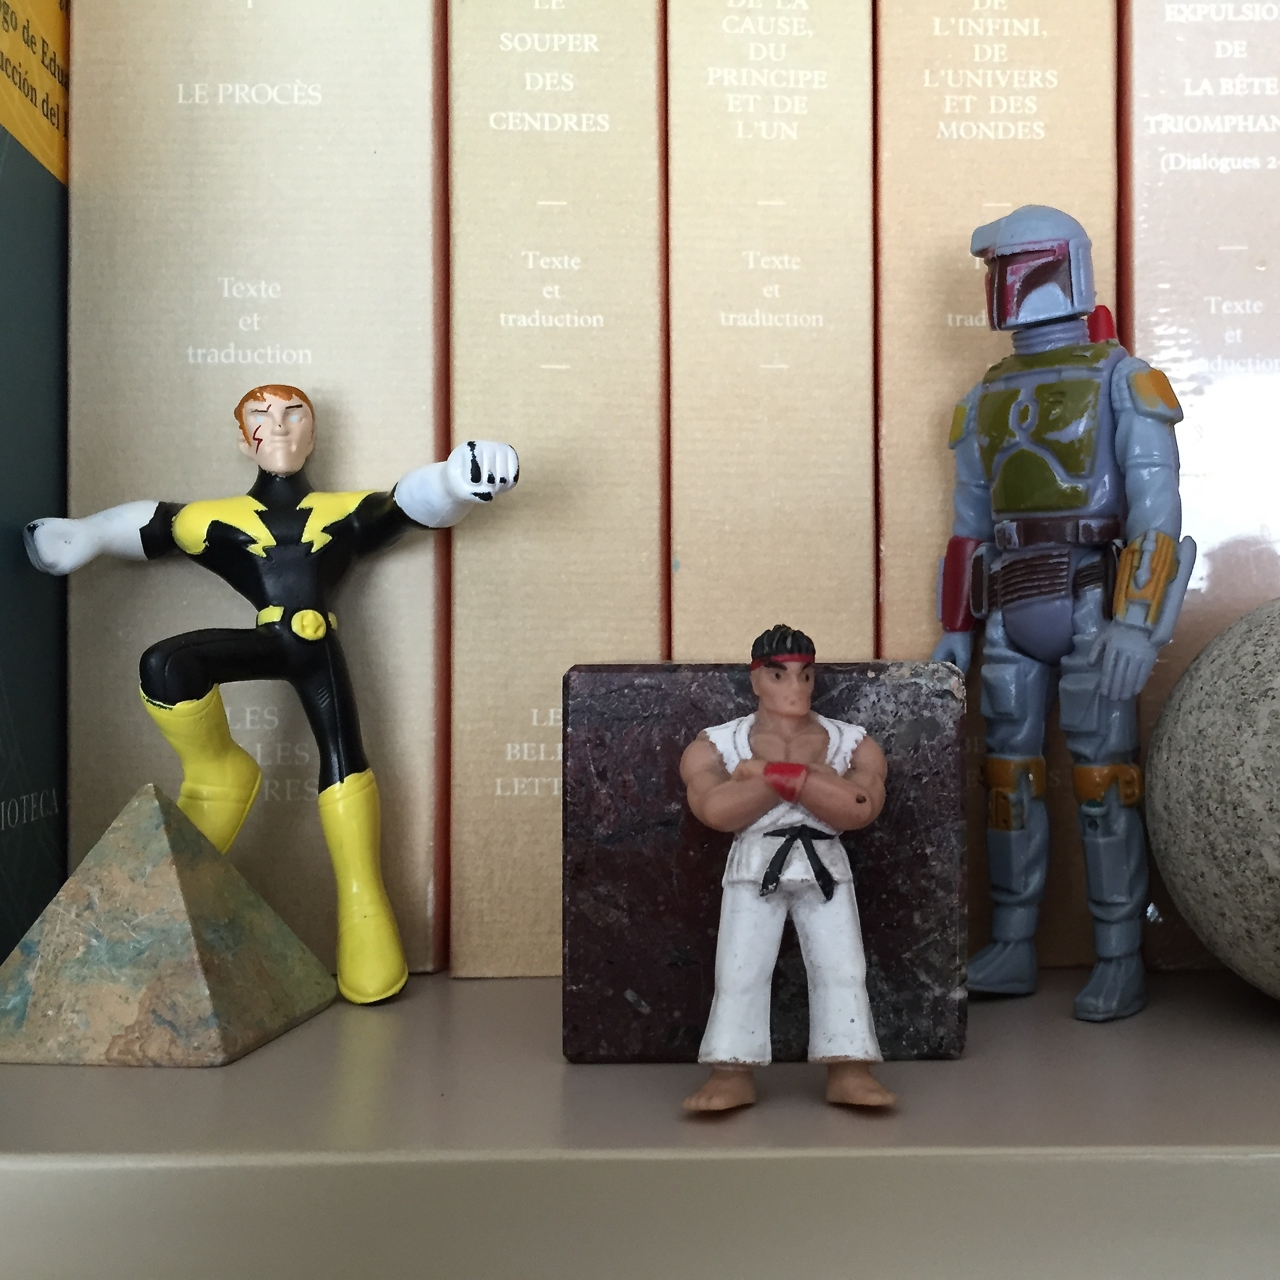 Guardians of literature...may the force be with you